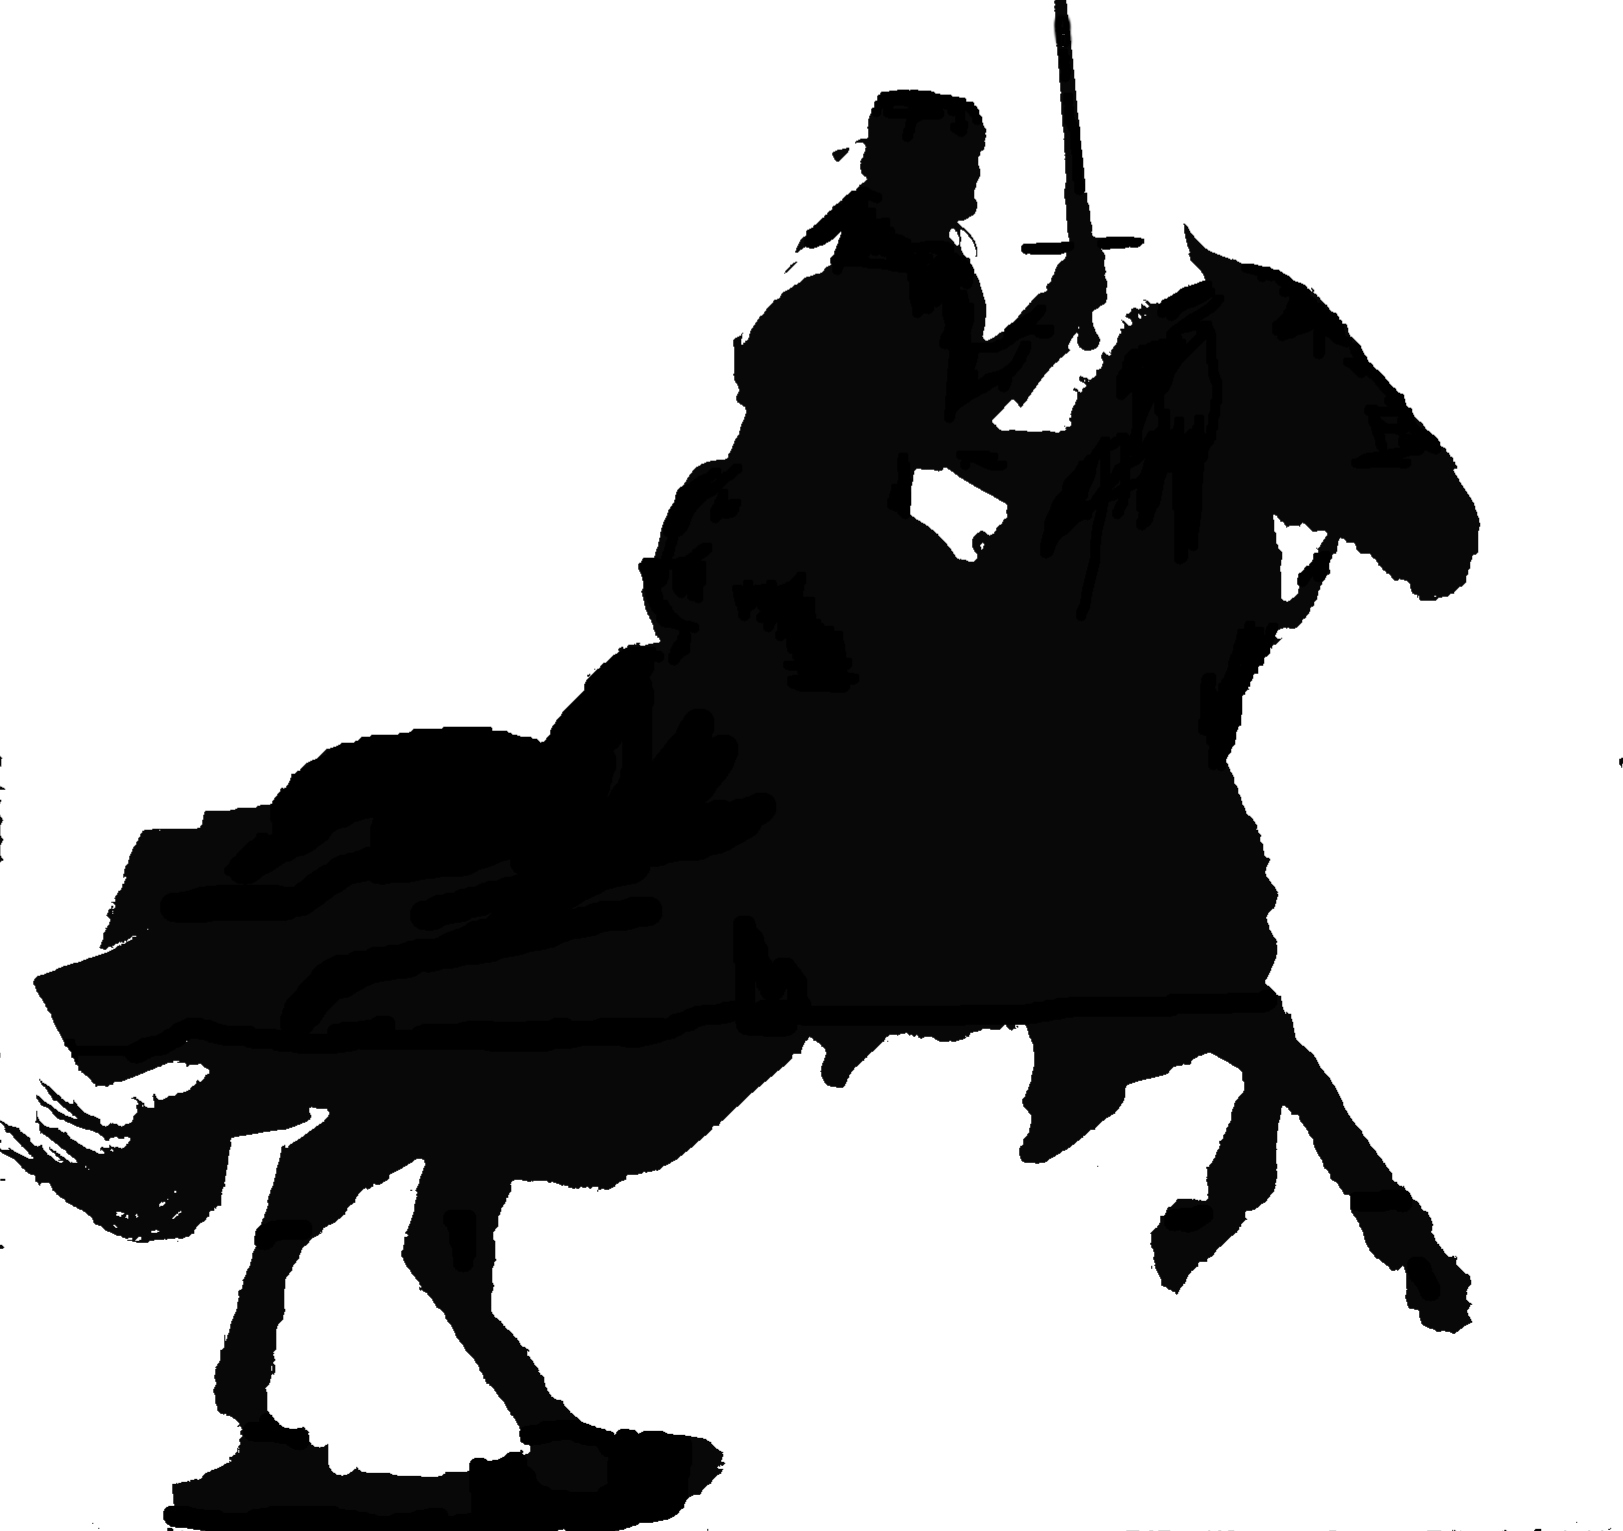 knight on a horse best knight on horse illustrations royalty free vector on knight a horse 1 1